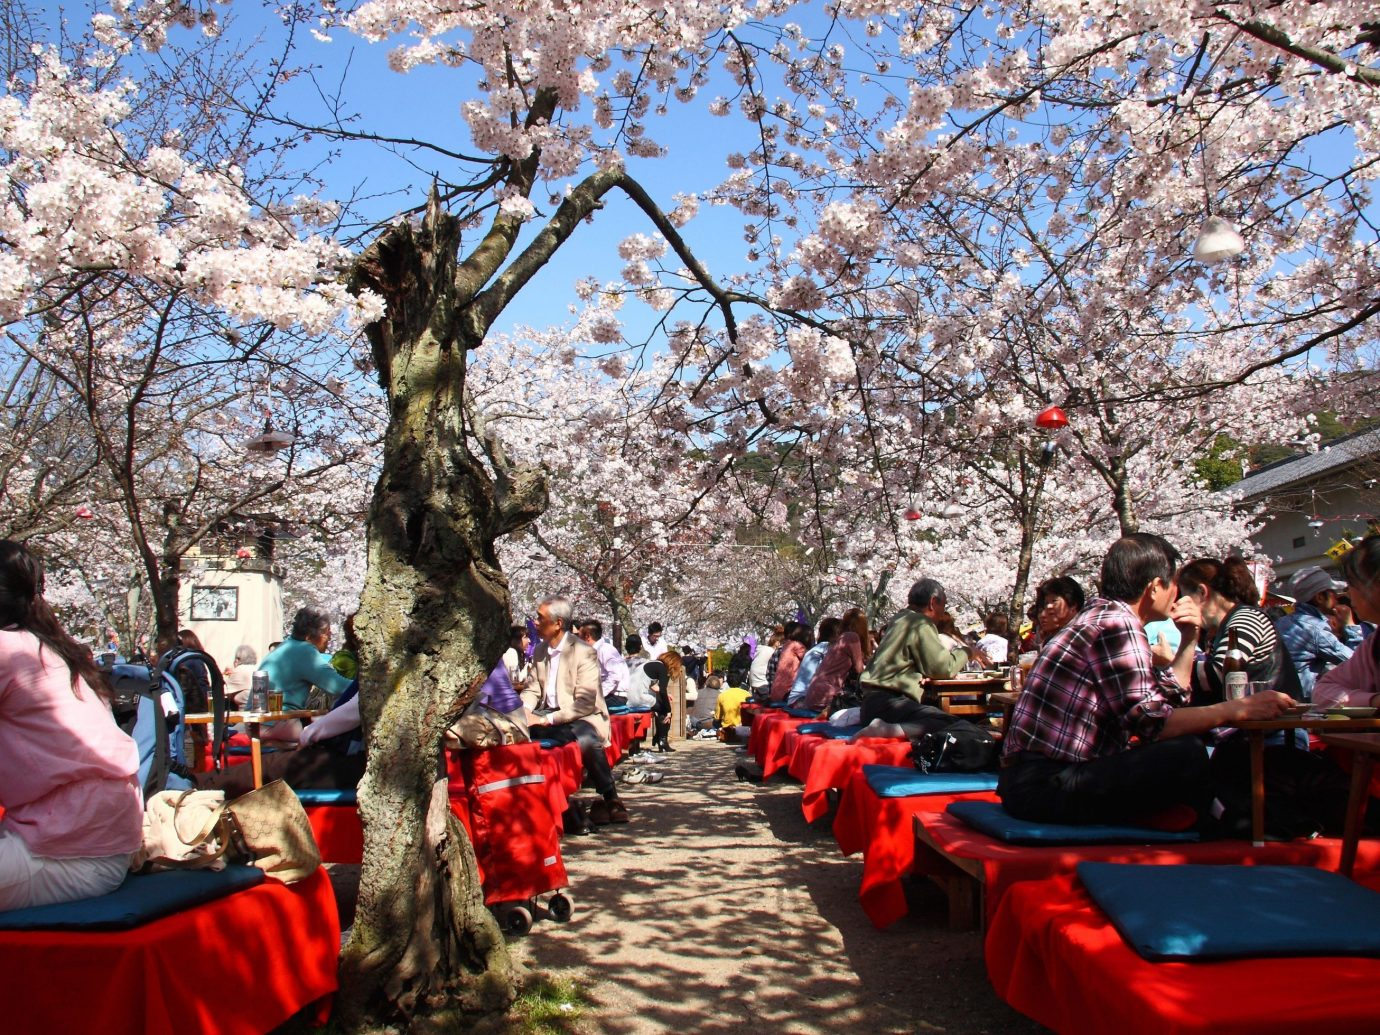 Trip Ideas tree outdoor person flower plant people cherry blossom spring group several